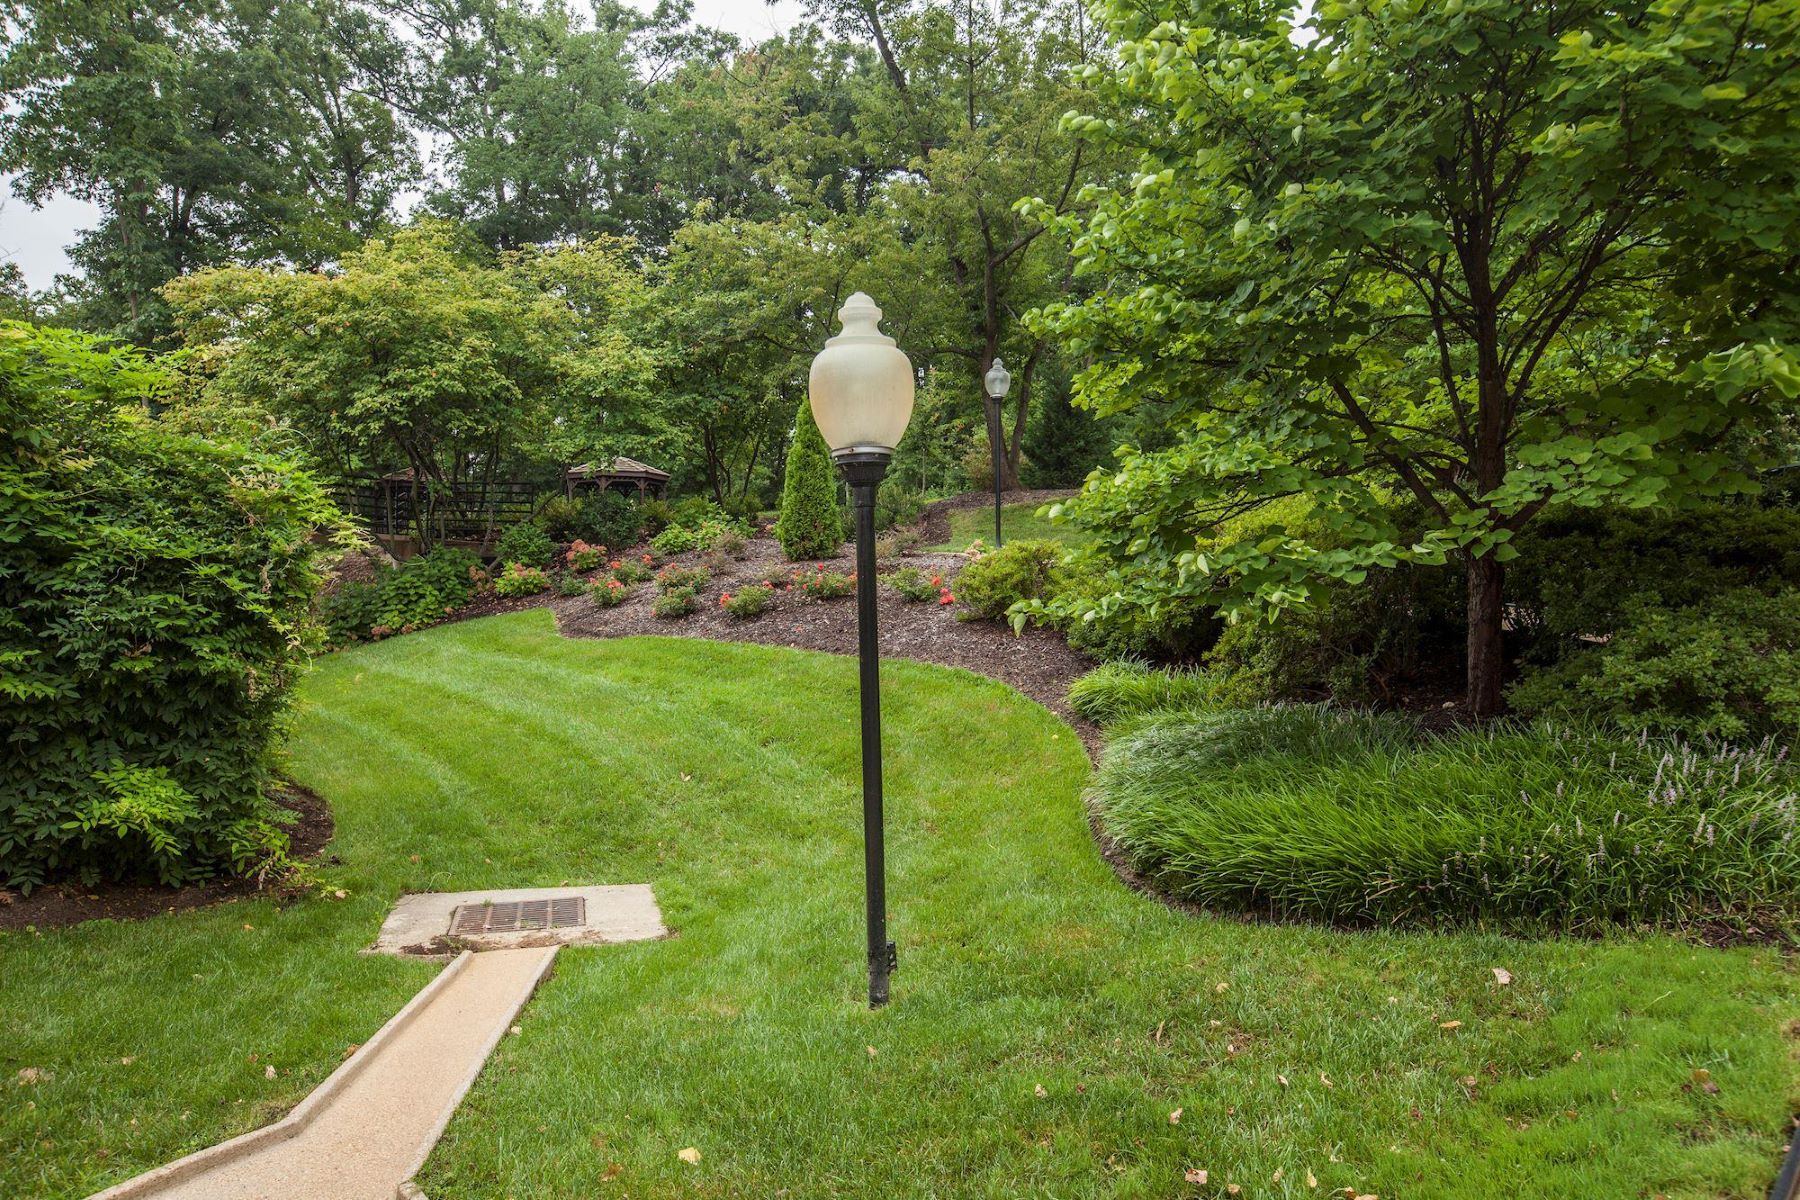 Additional photo for property listing at 5901 Mount Eagle Dr #307 5901 Mount Eagle Dr #307 Alexandria, Virginia 22303 United States